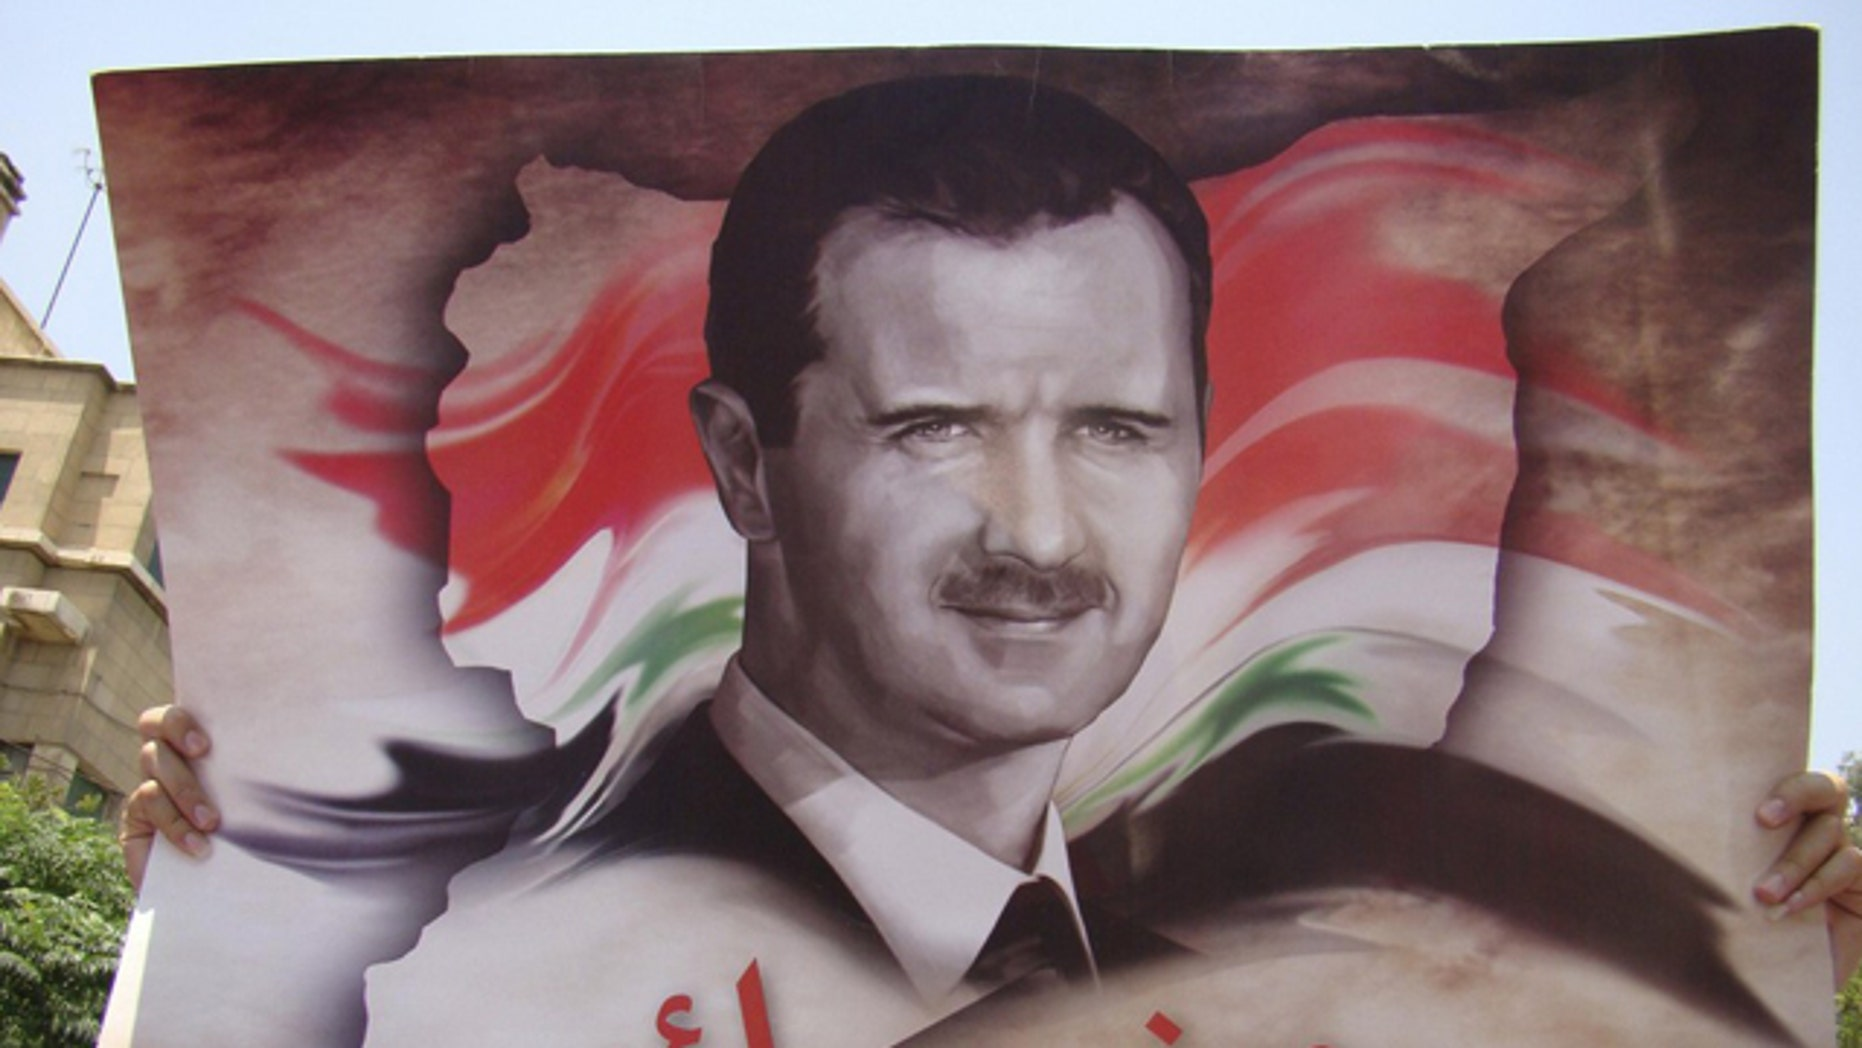 July 11: A government loyalists holds a picture of Syria's President Bashar al-Assad during a protest outside the U.S. embassy in Damascus.